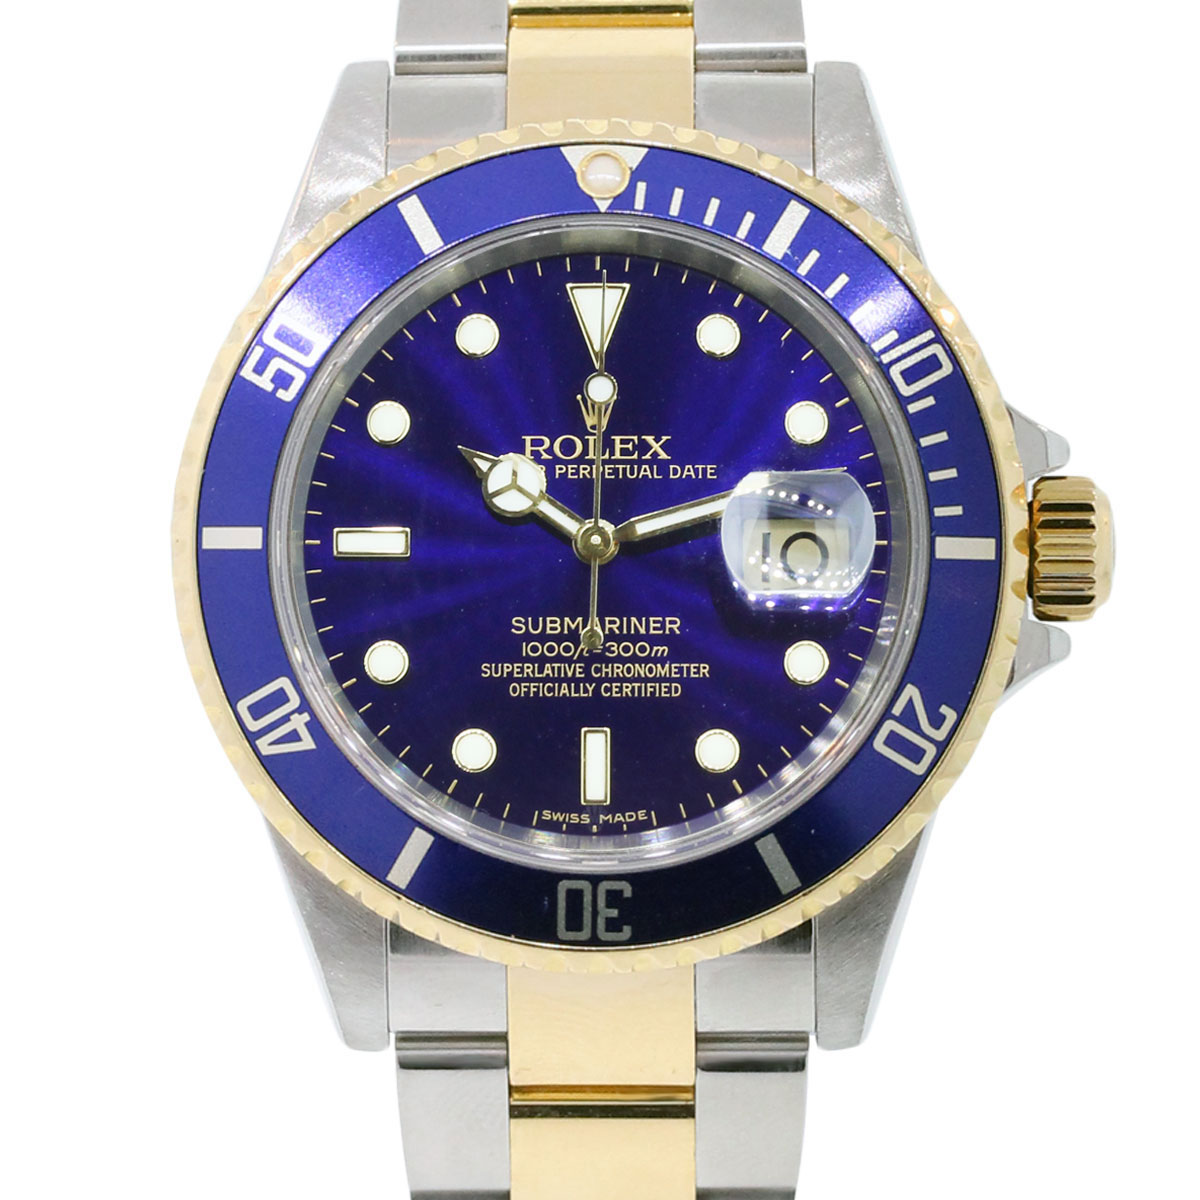 rolex 16613 submariner date two tone blue dial watch. Black Bedroom Furniture Sets. Home Design Ideas